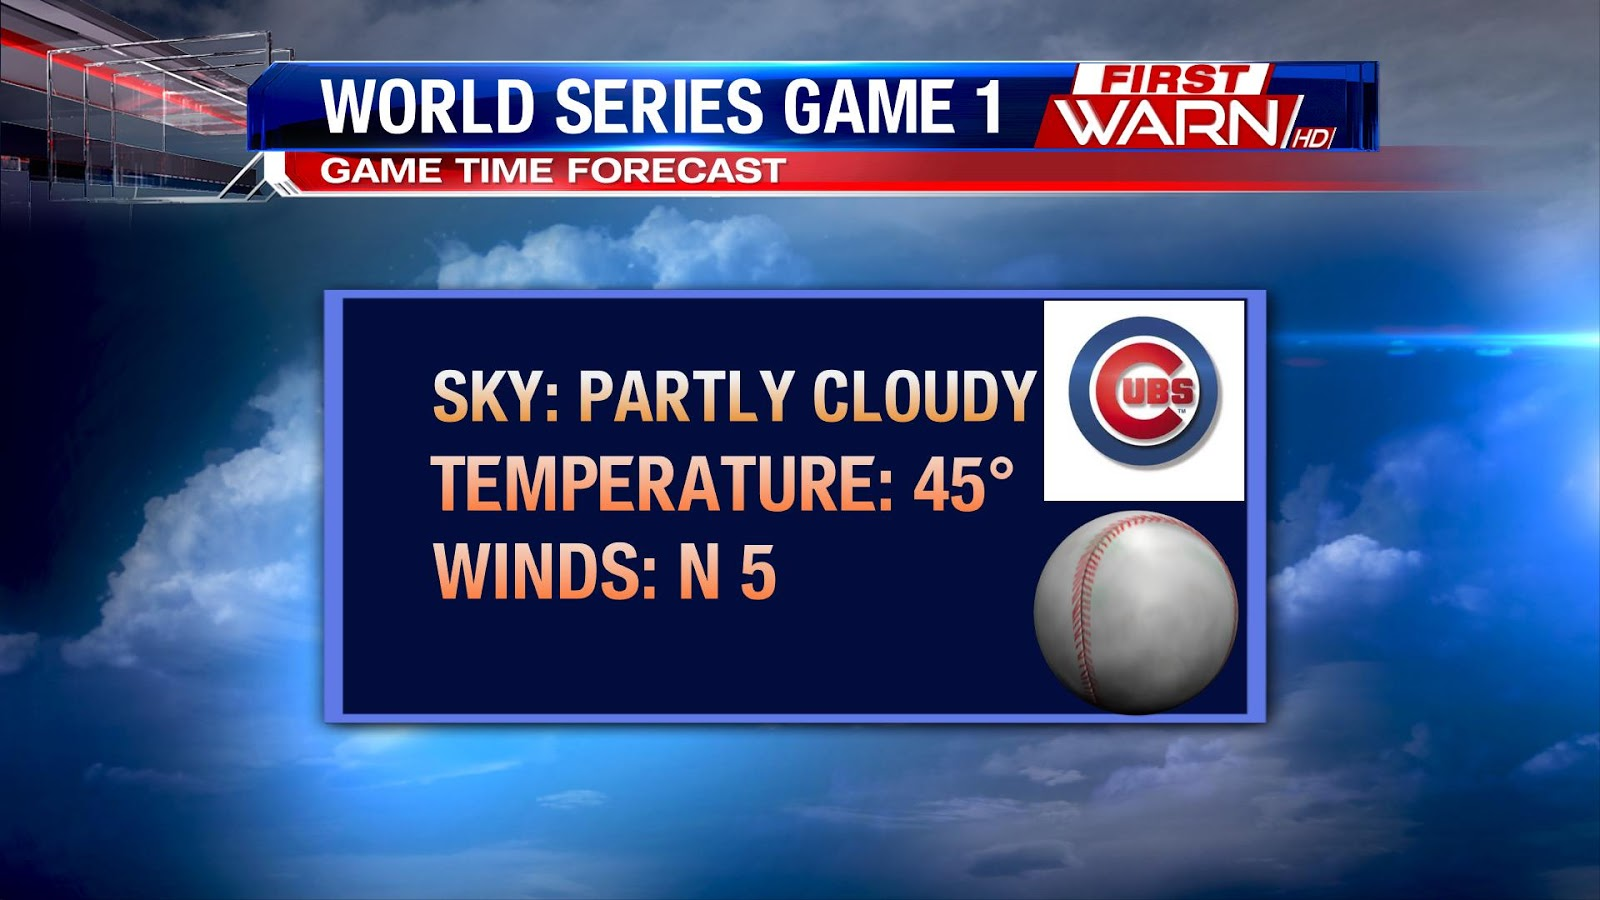 Weather forecast for world series game 2 feng shui casino